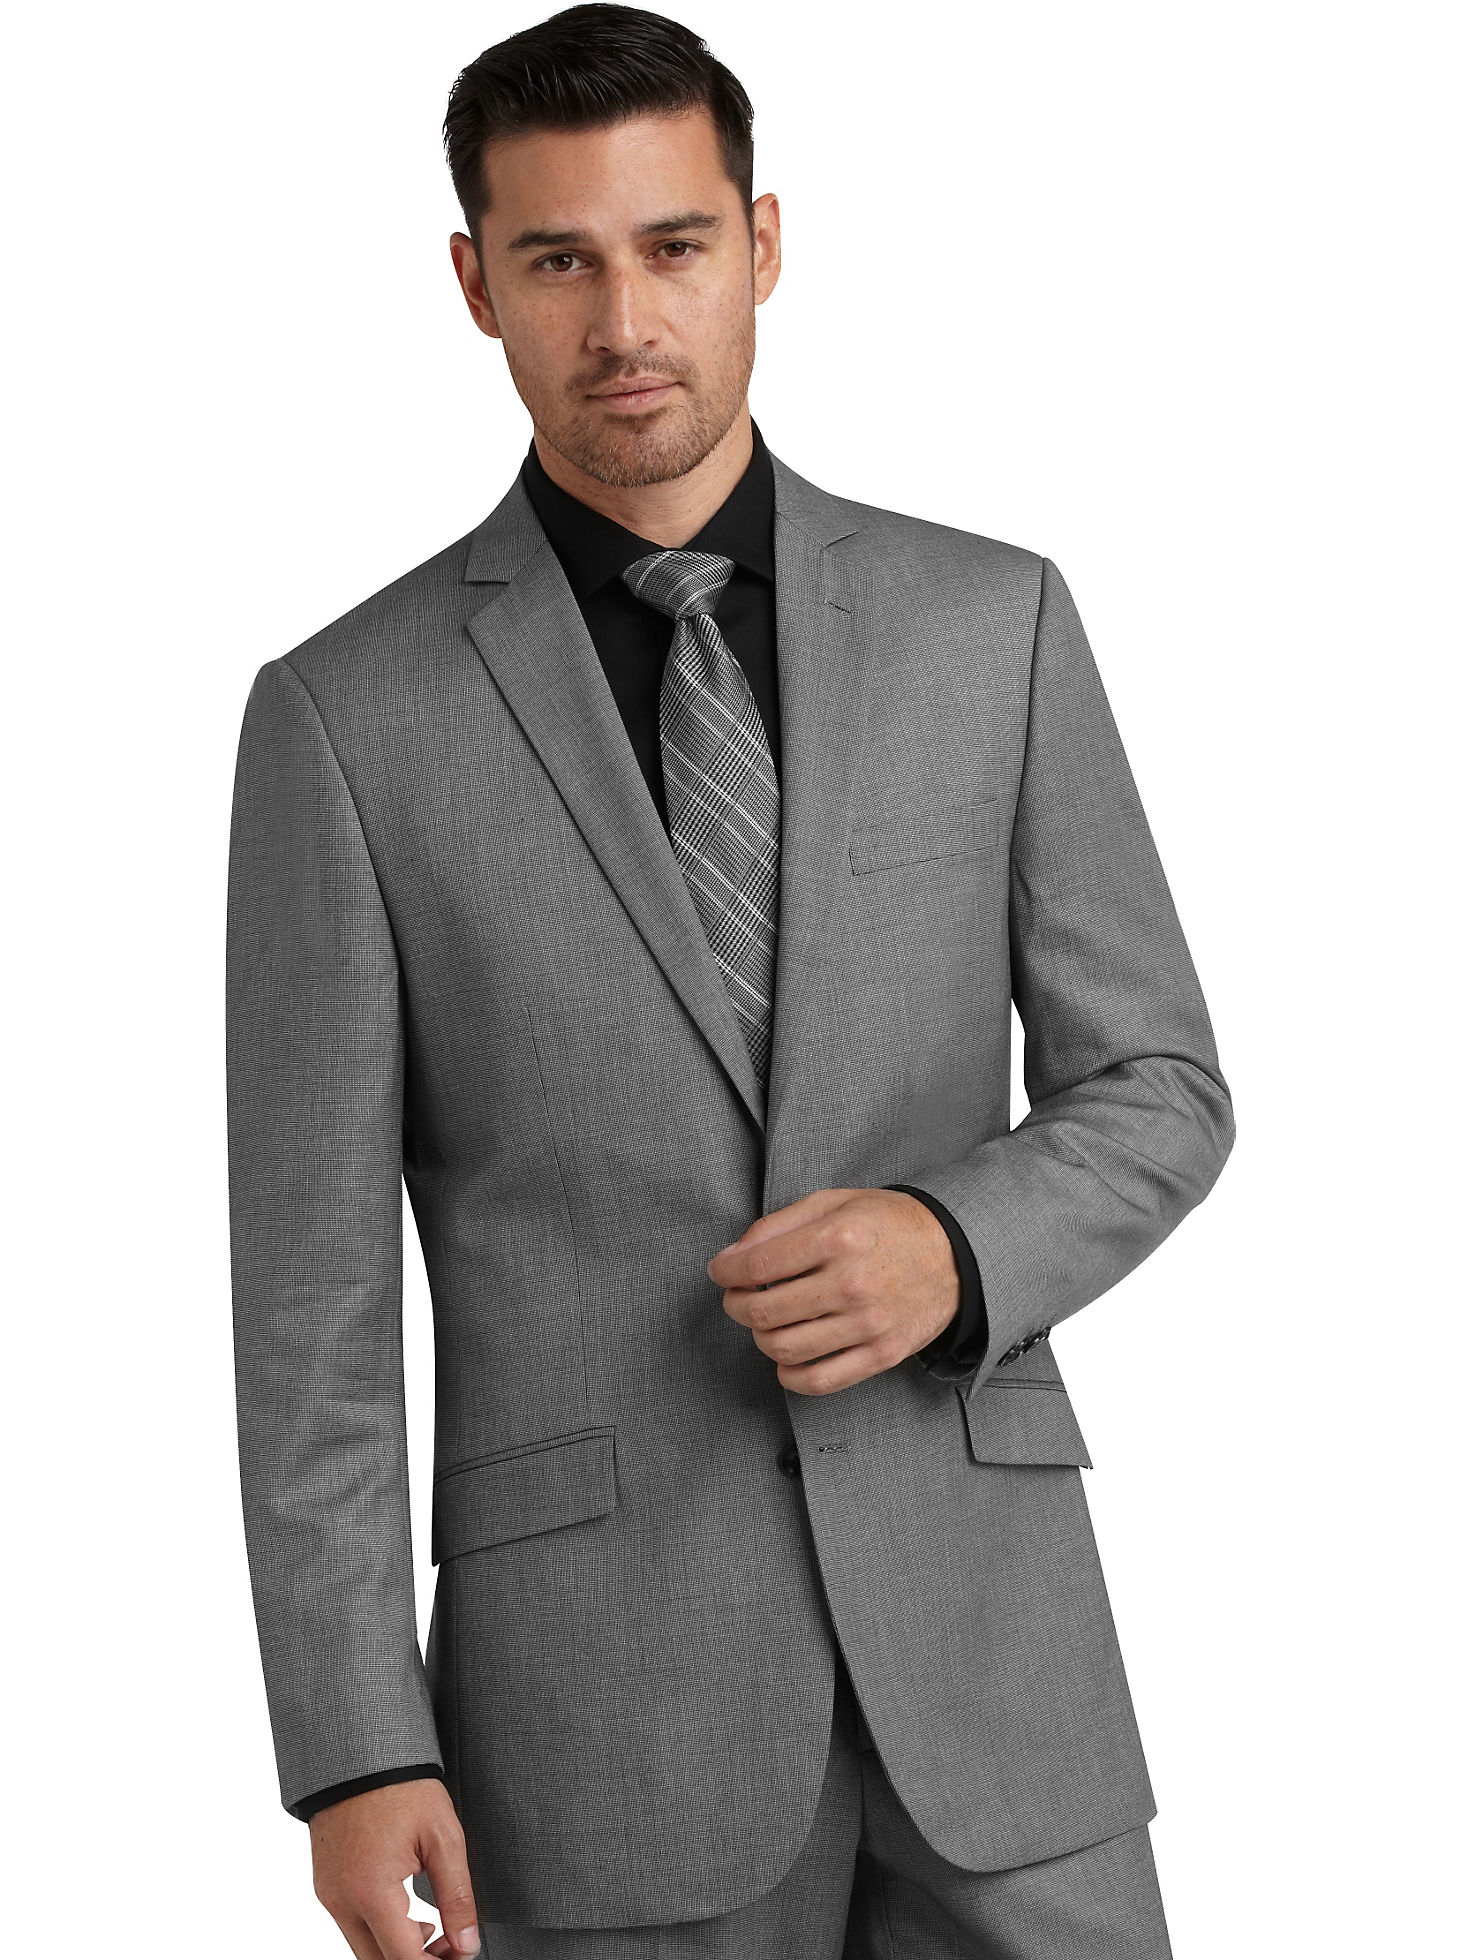 Best Suit at Men's Wearhouse